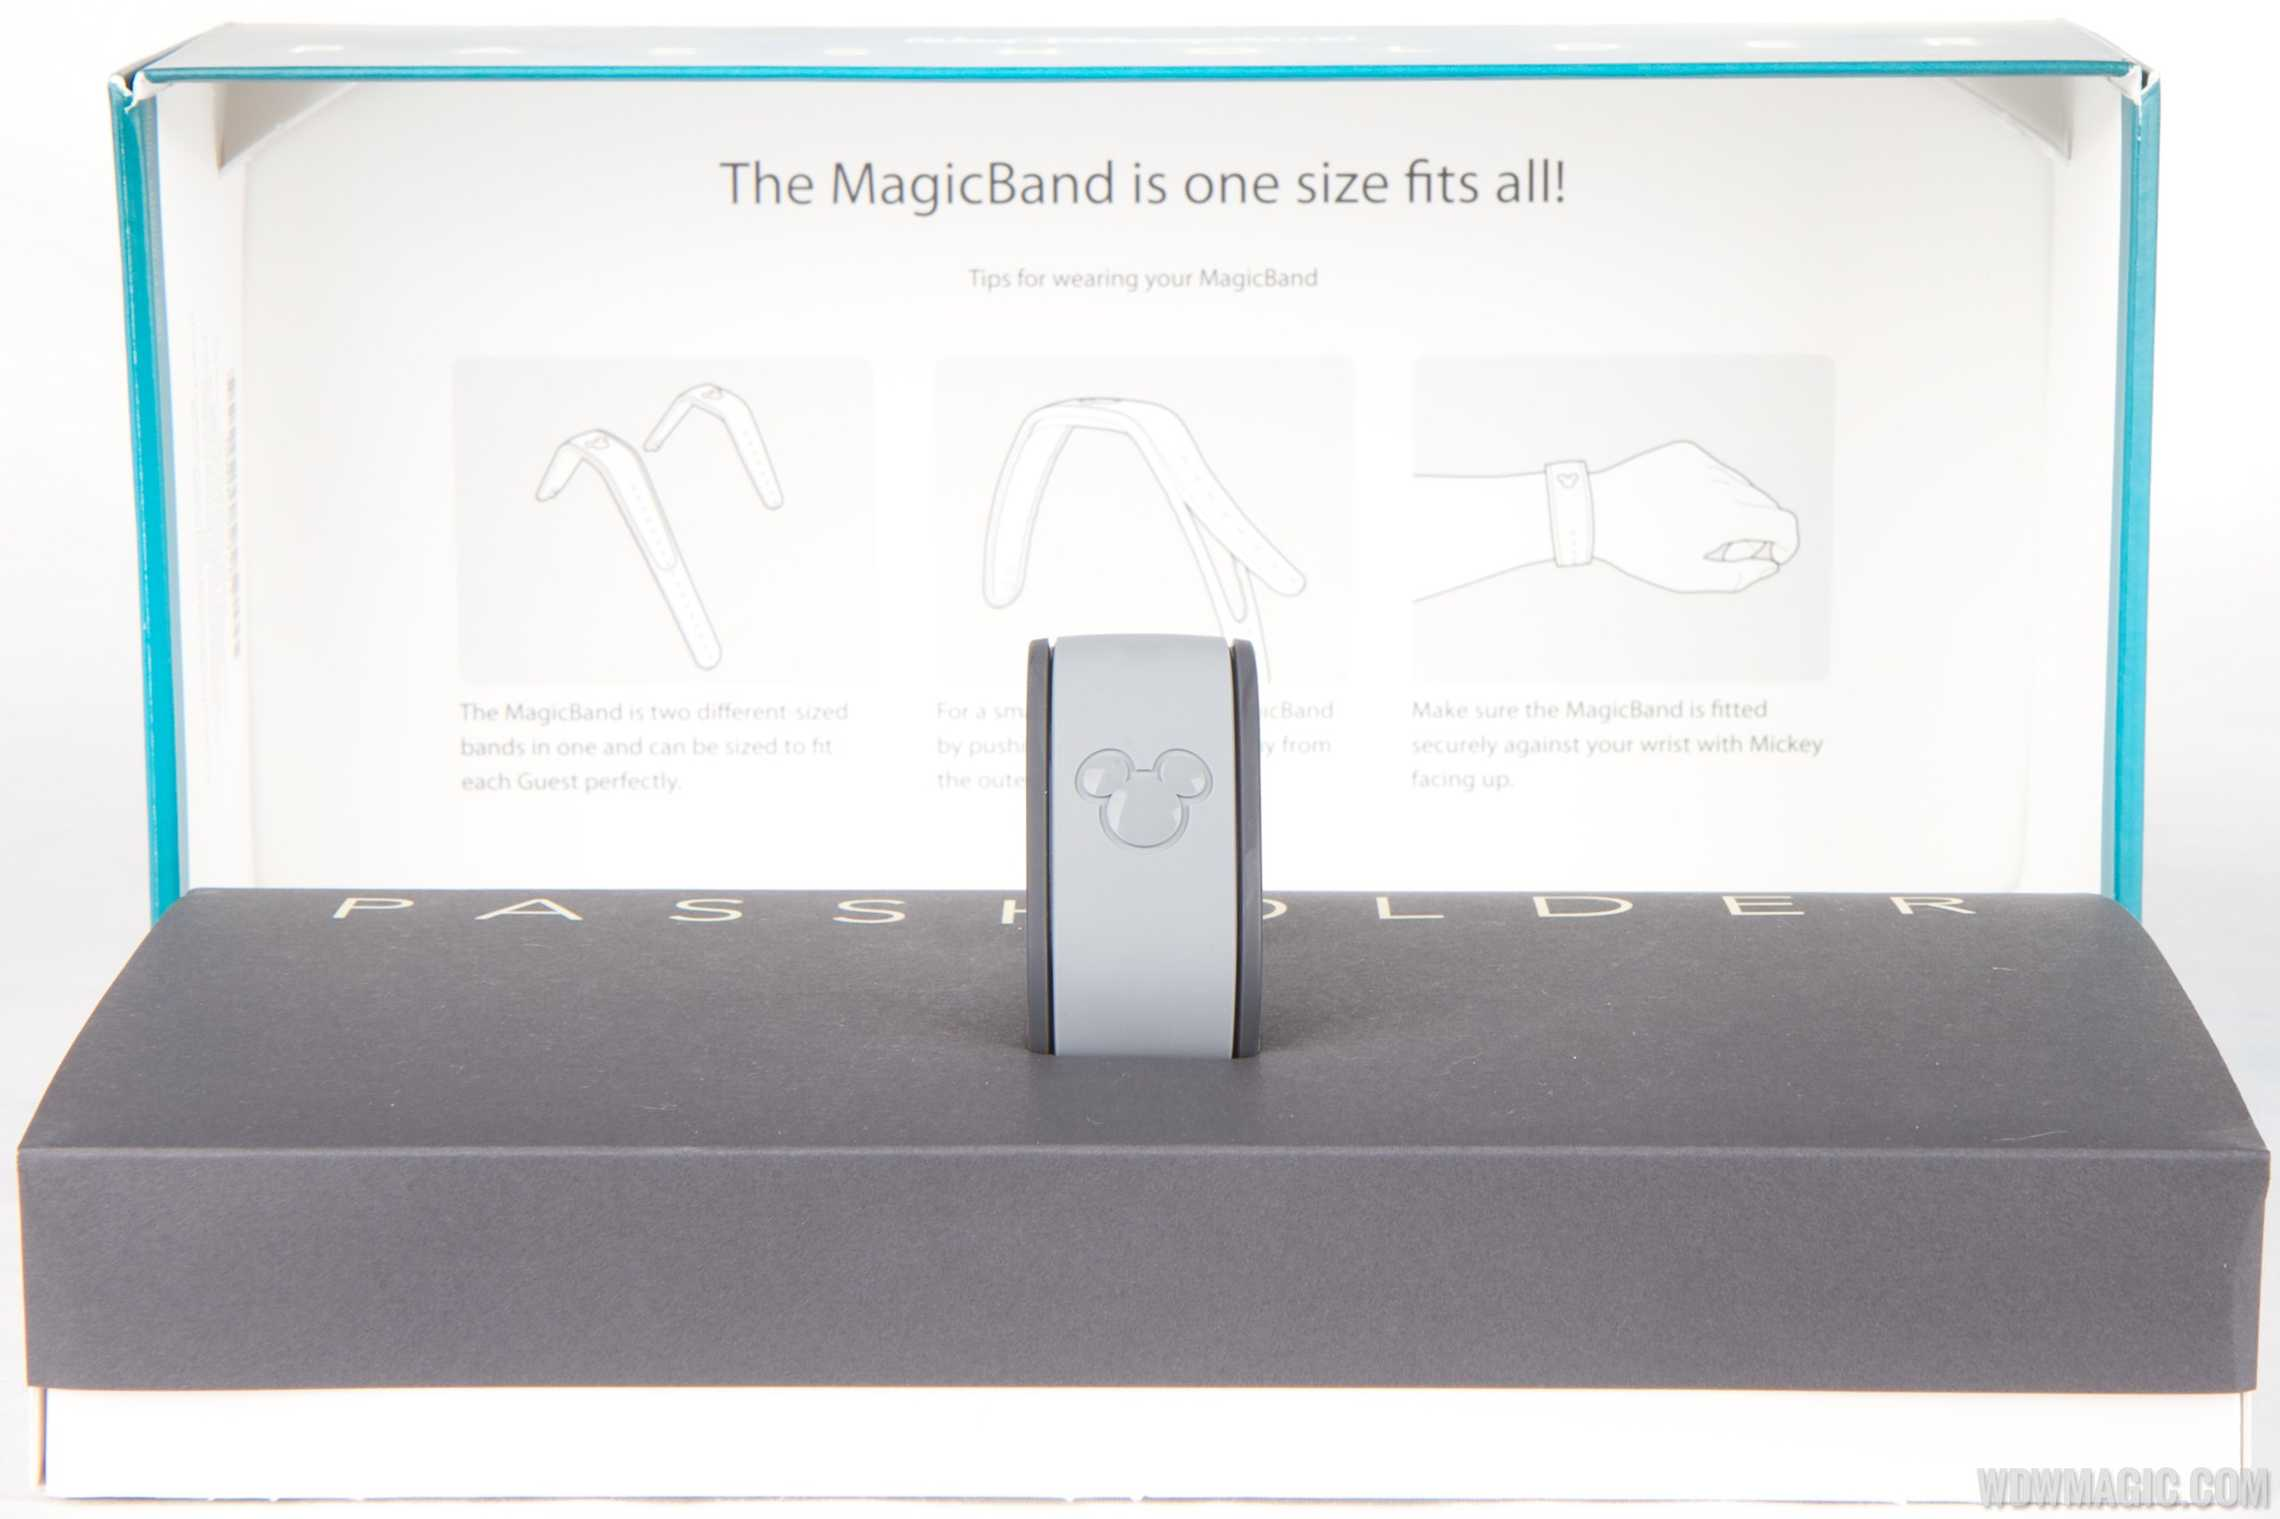 Passholder MagicBand inside the box